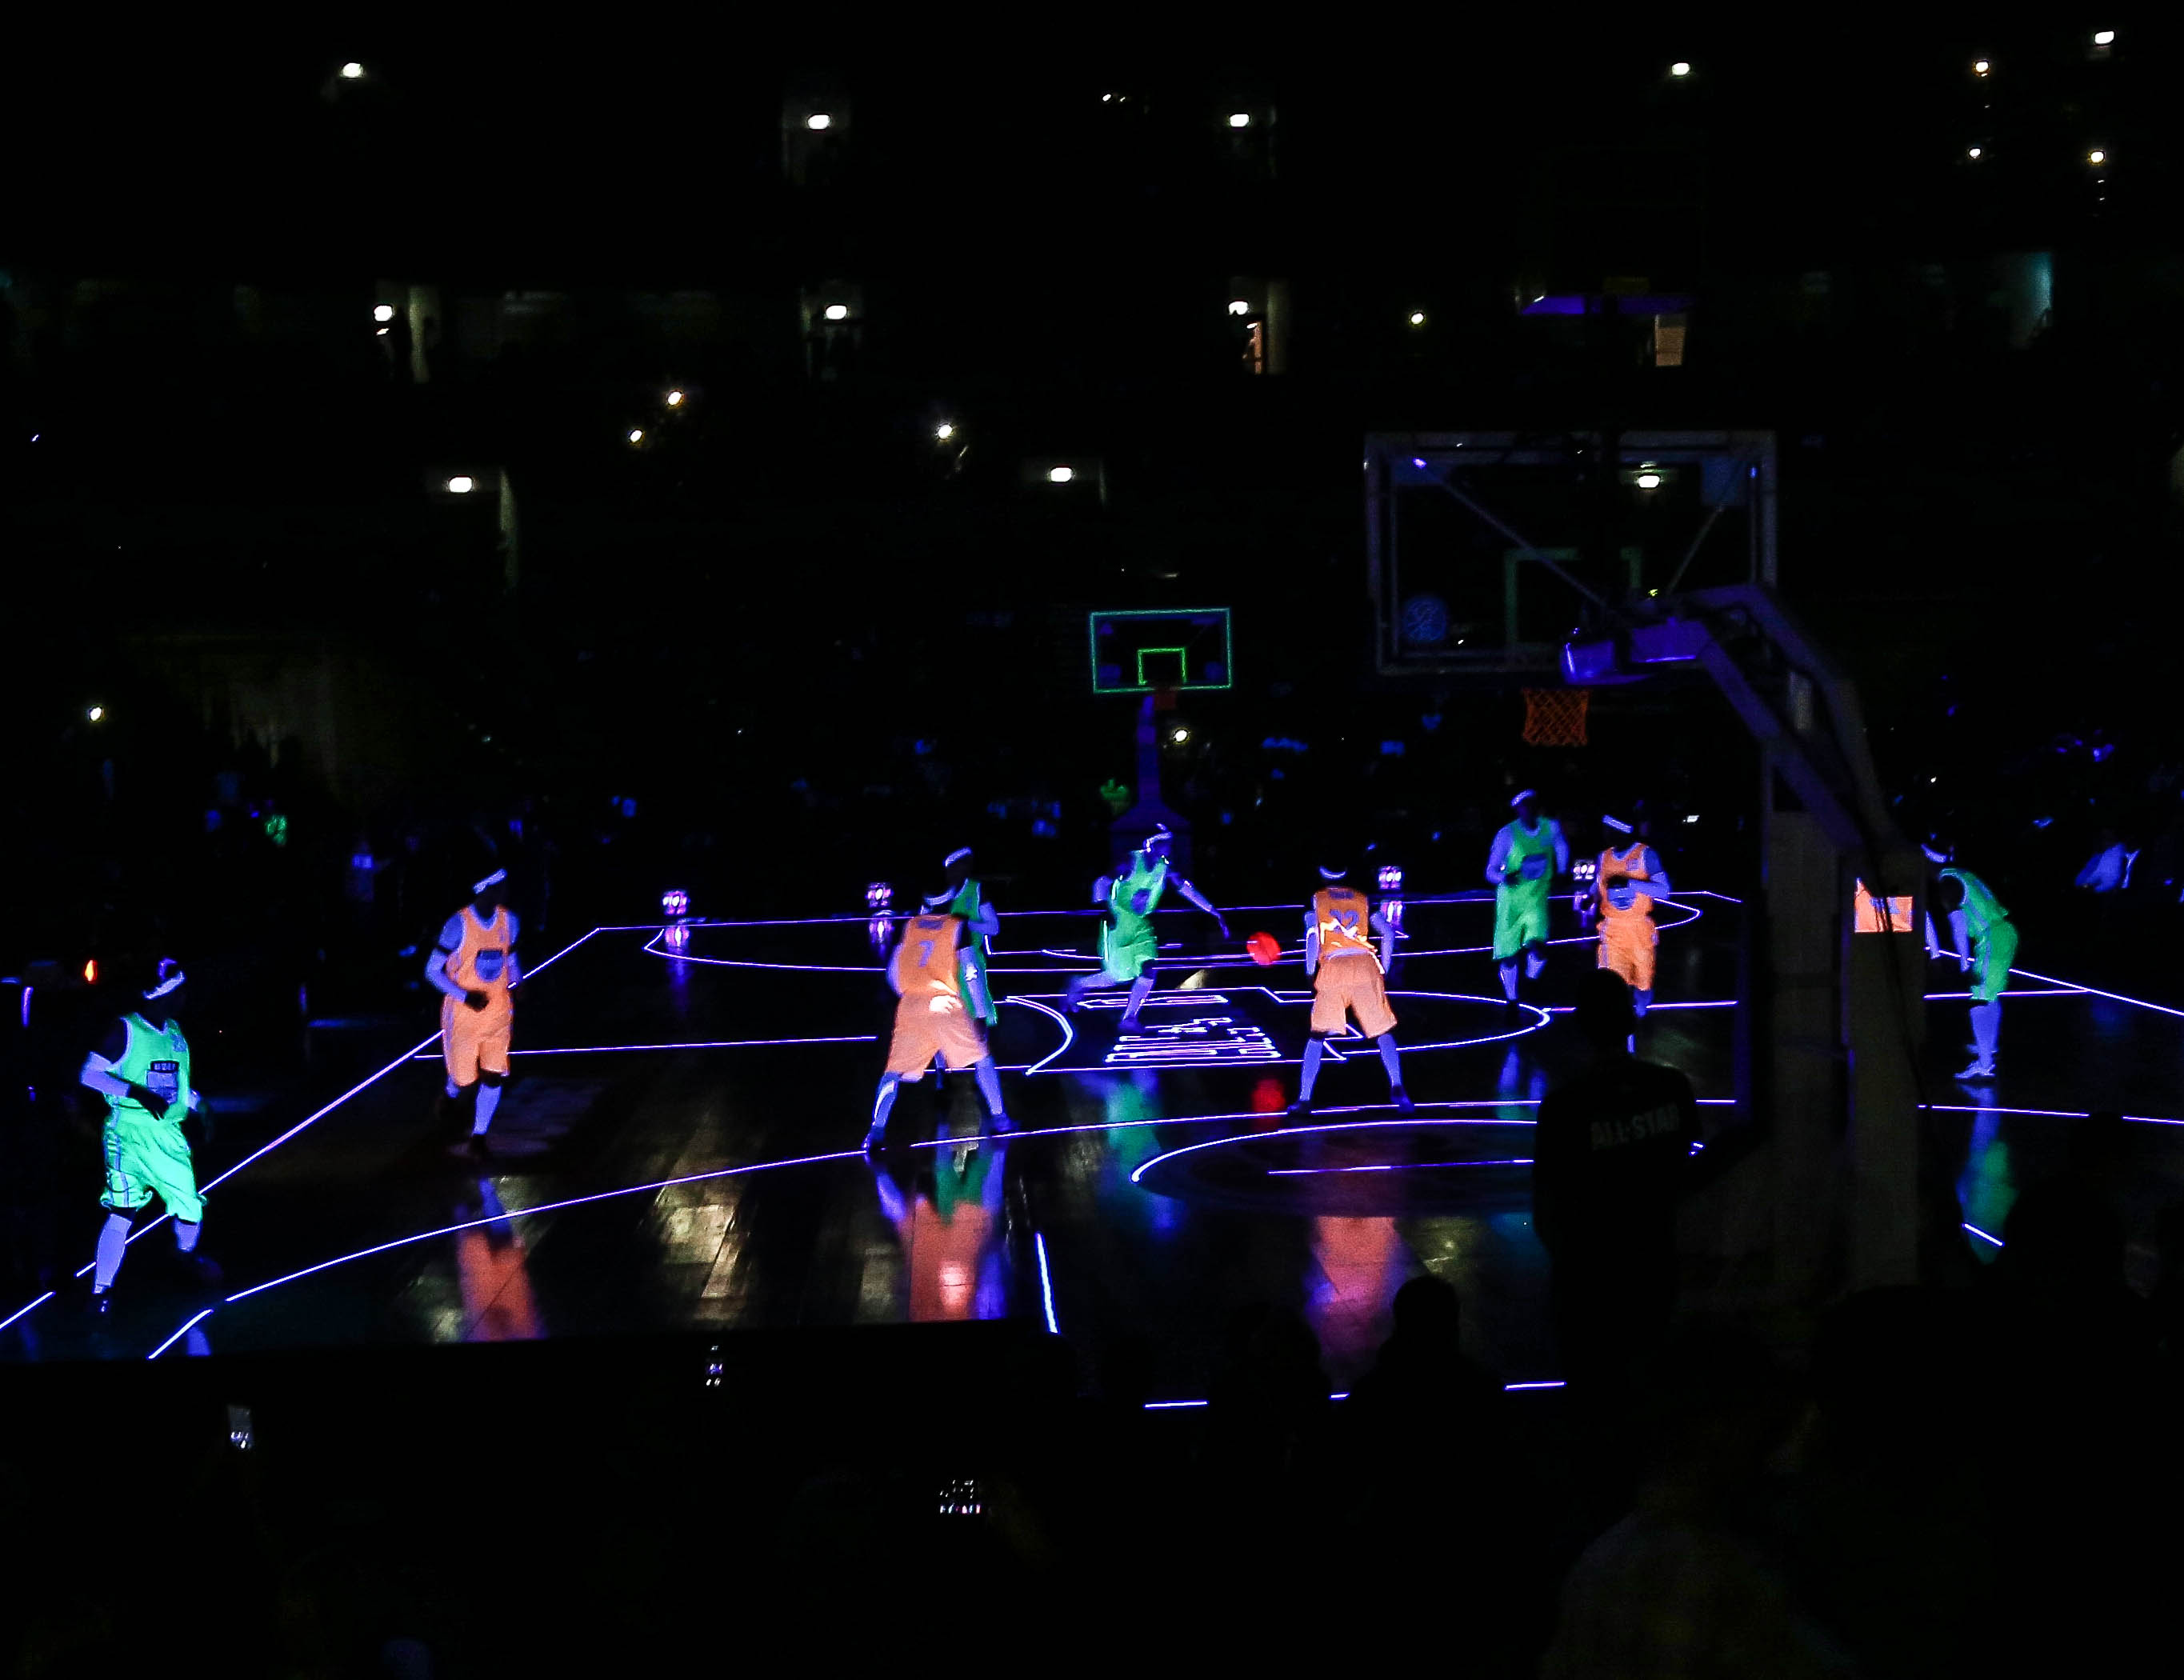 Inside Basketball In The Dark (VIDEO)